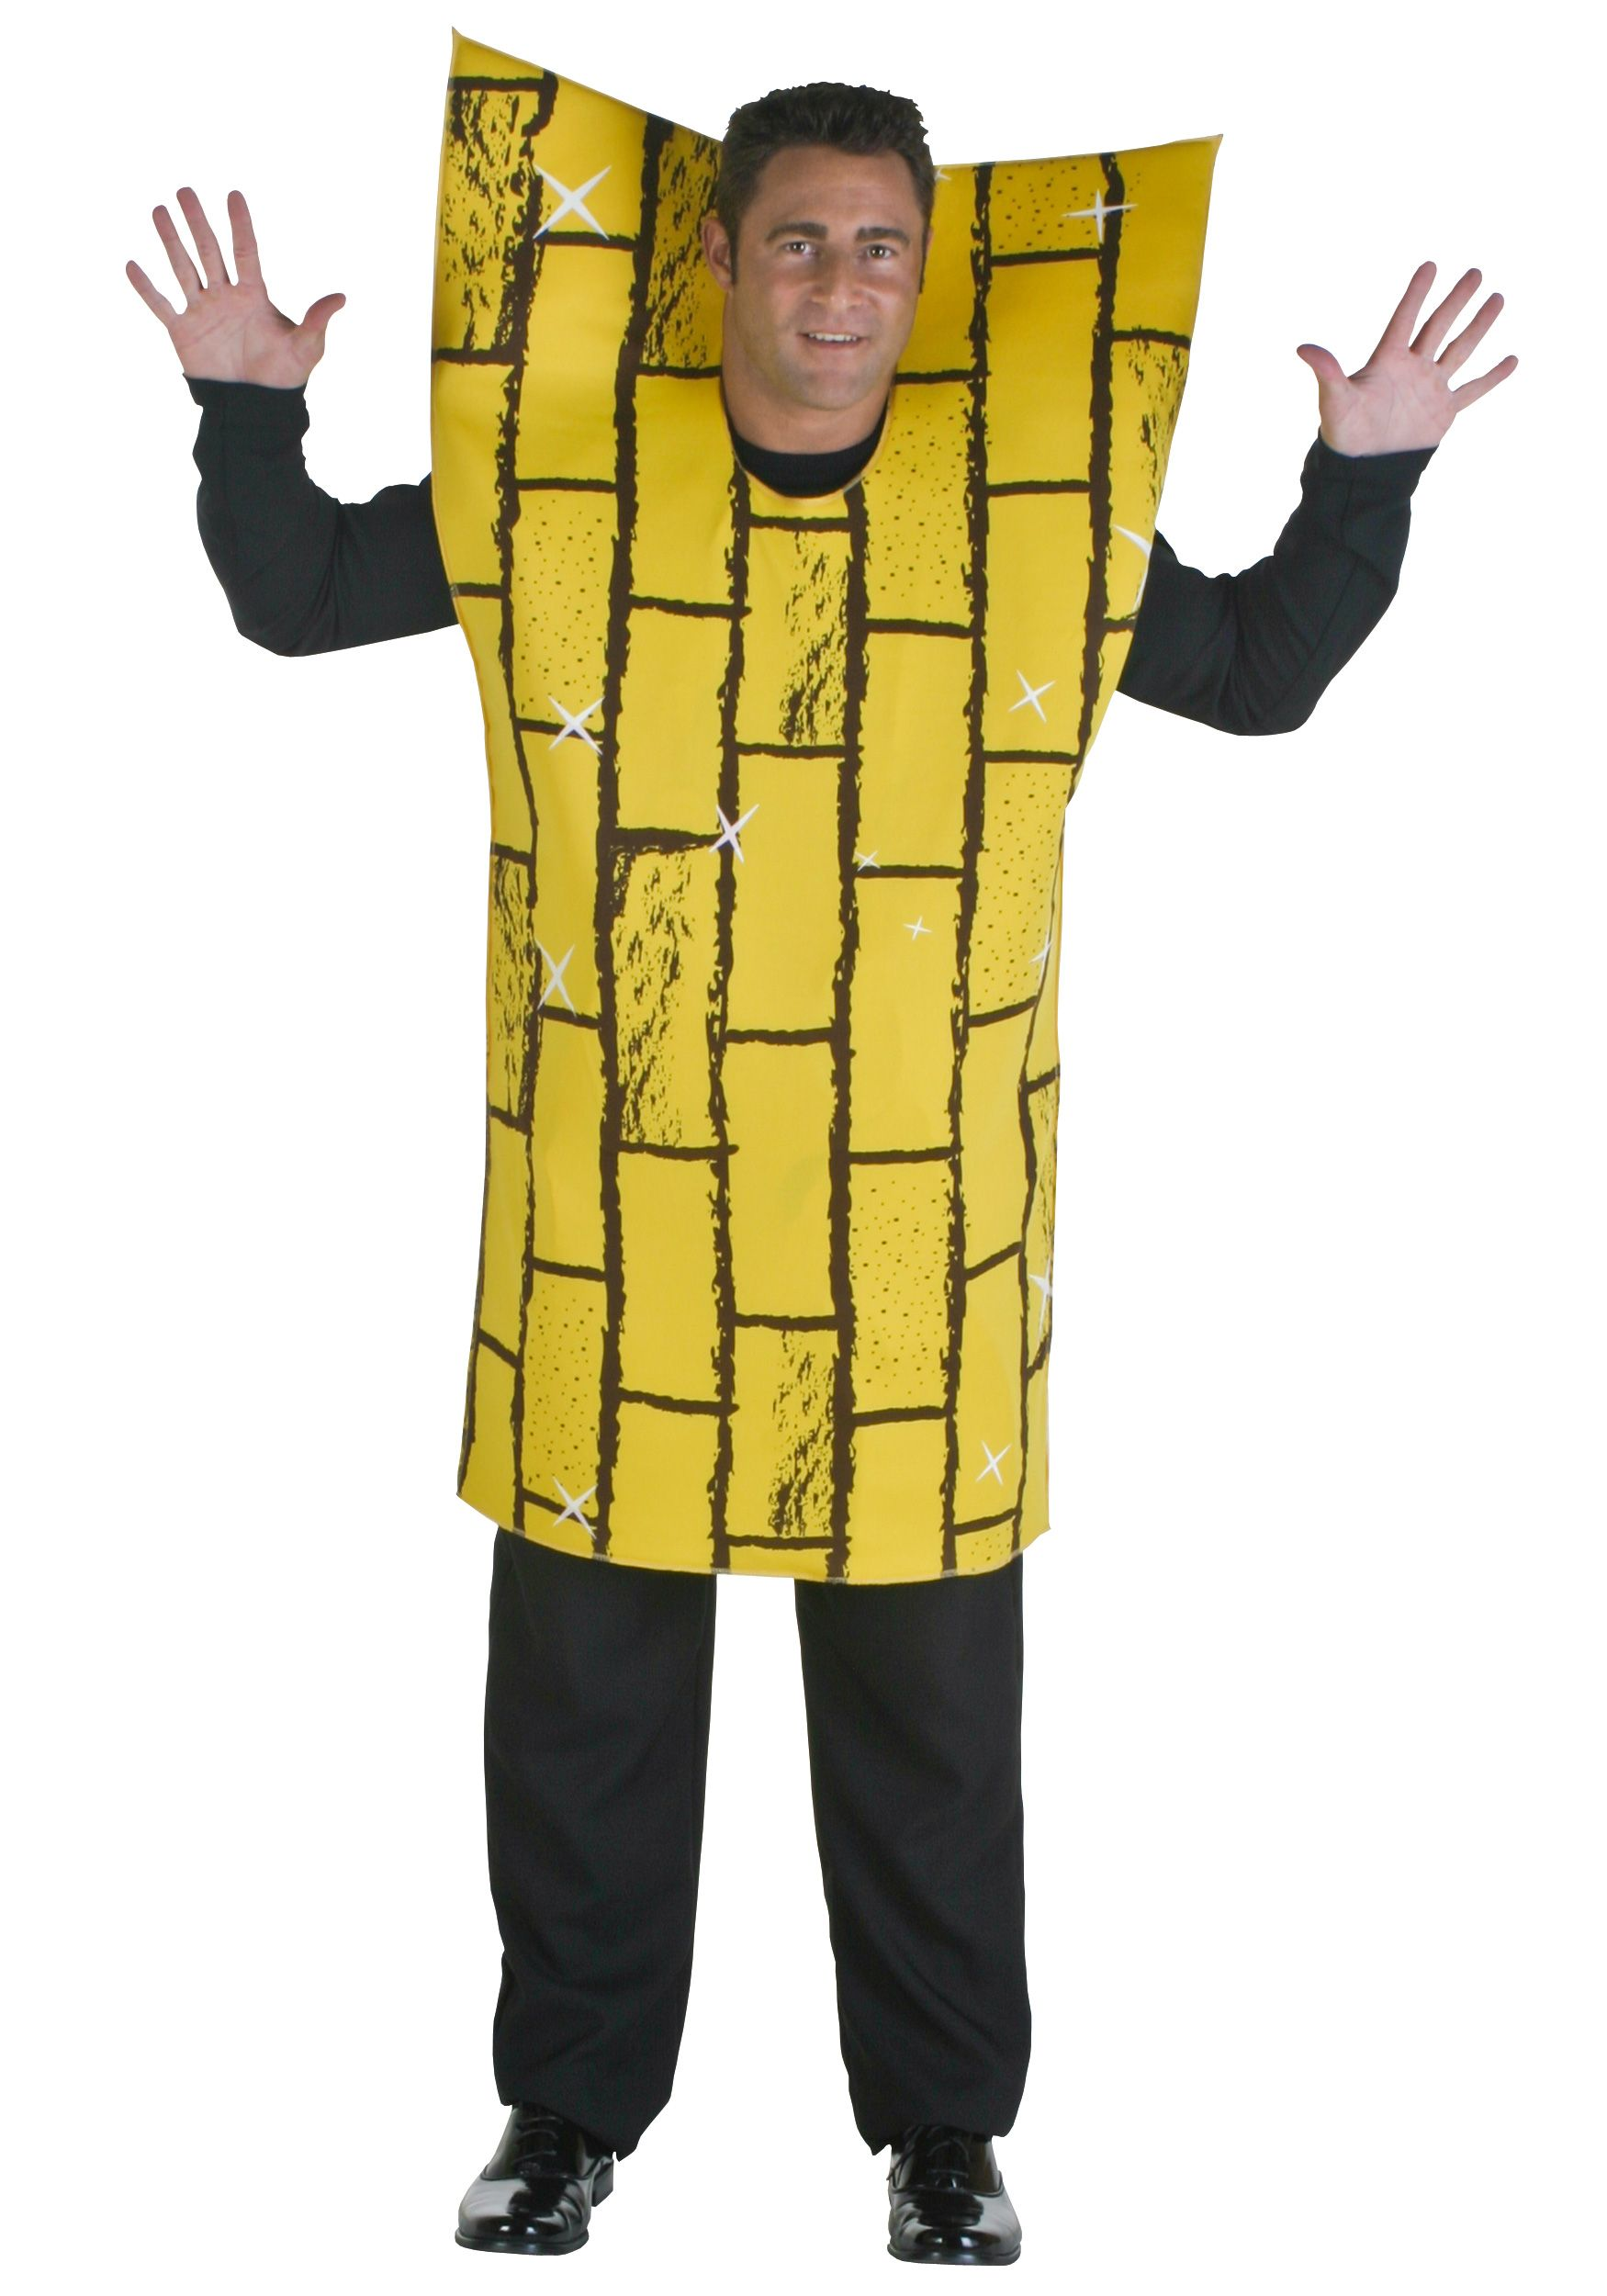 Adult Yellow Brick Road Costume | Yellow brick road, Brick road ...